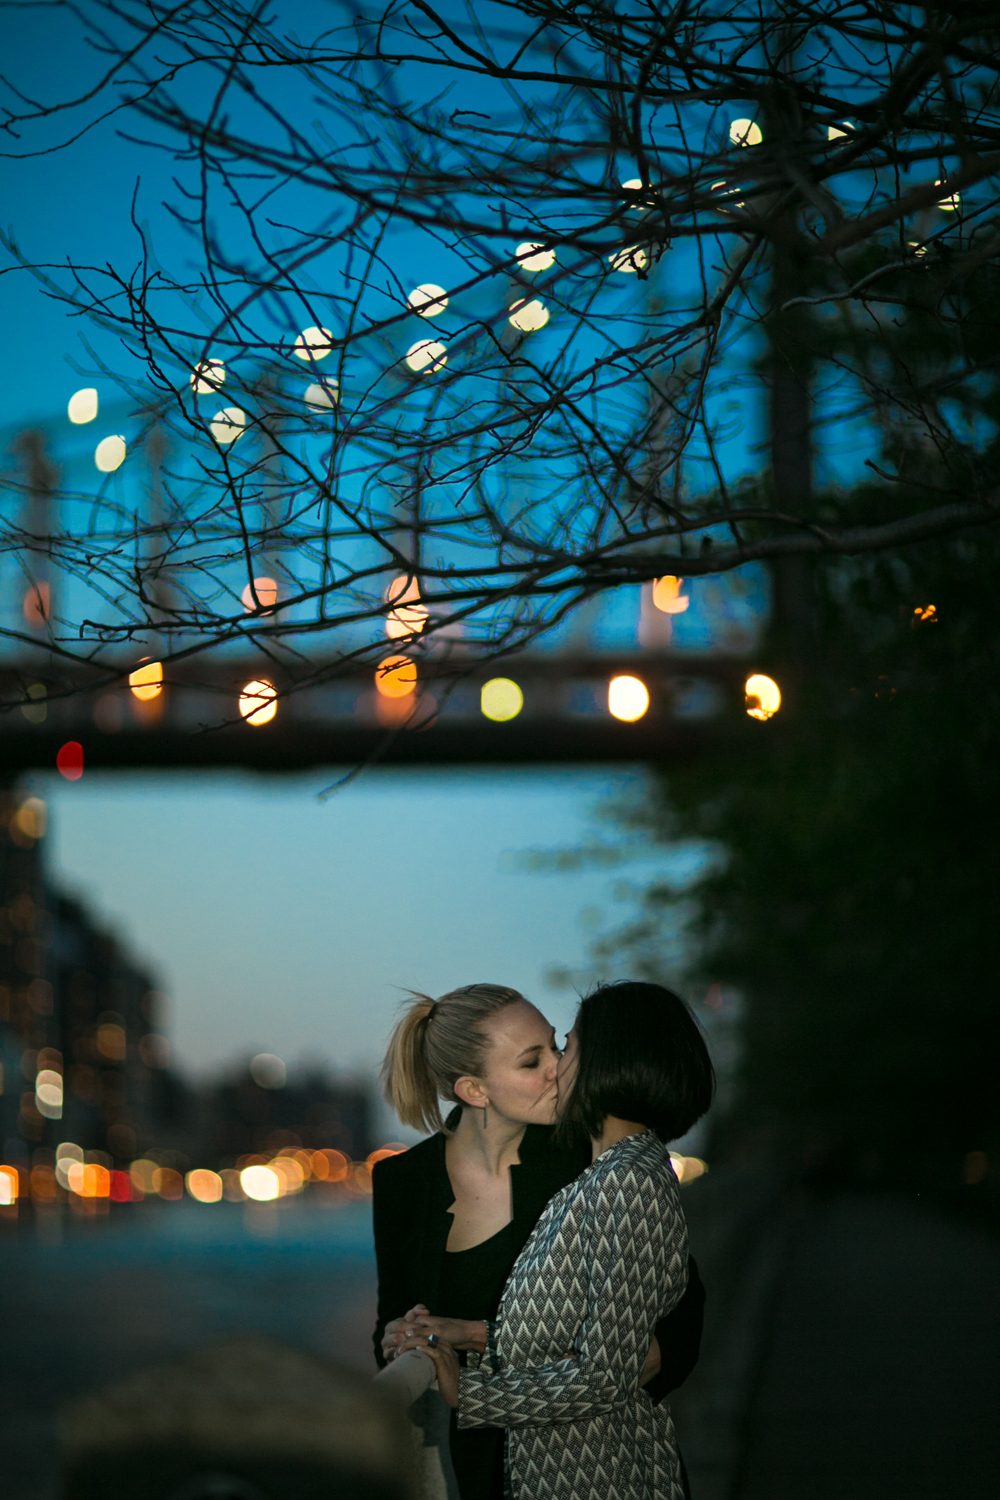 Kissing under the New York City Lights